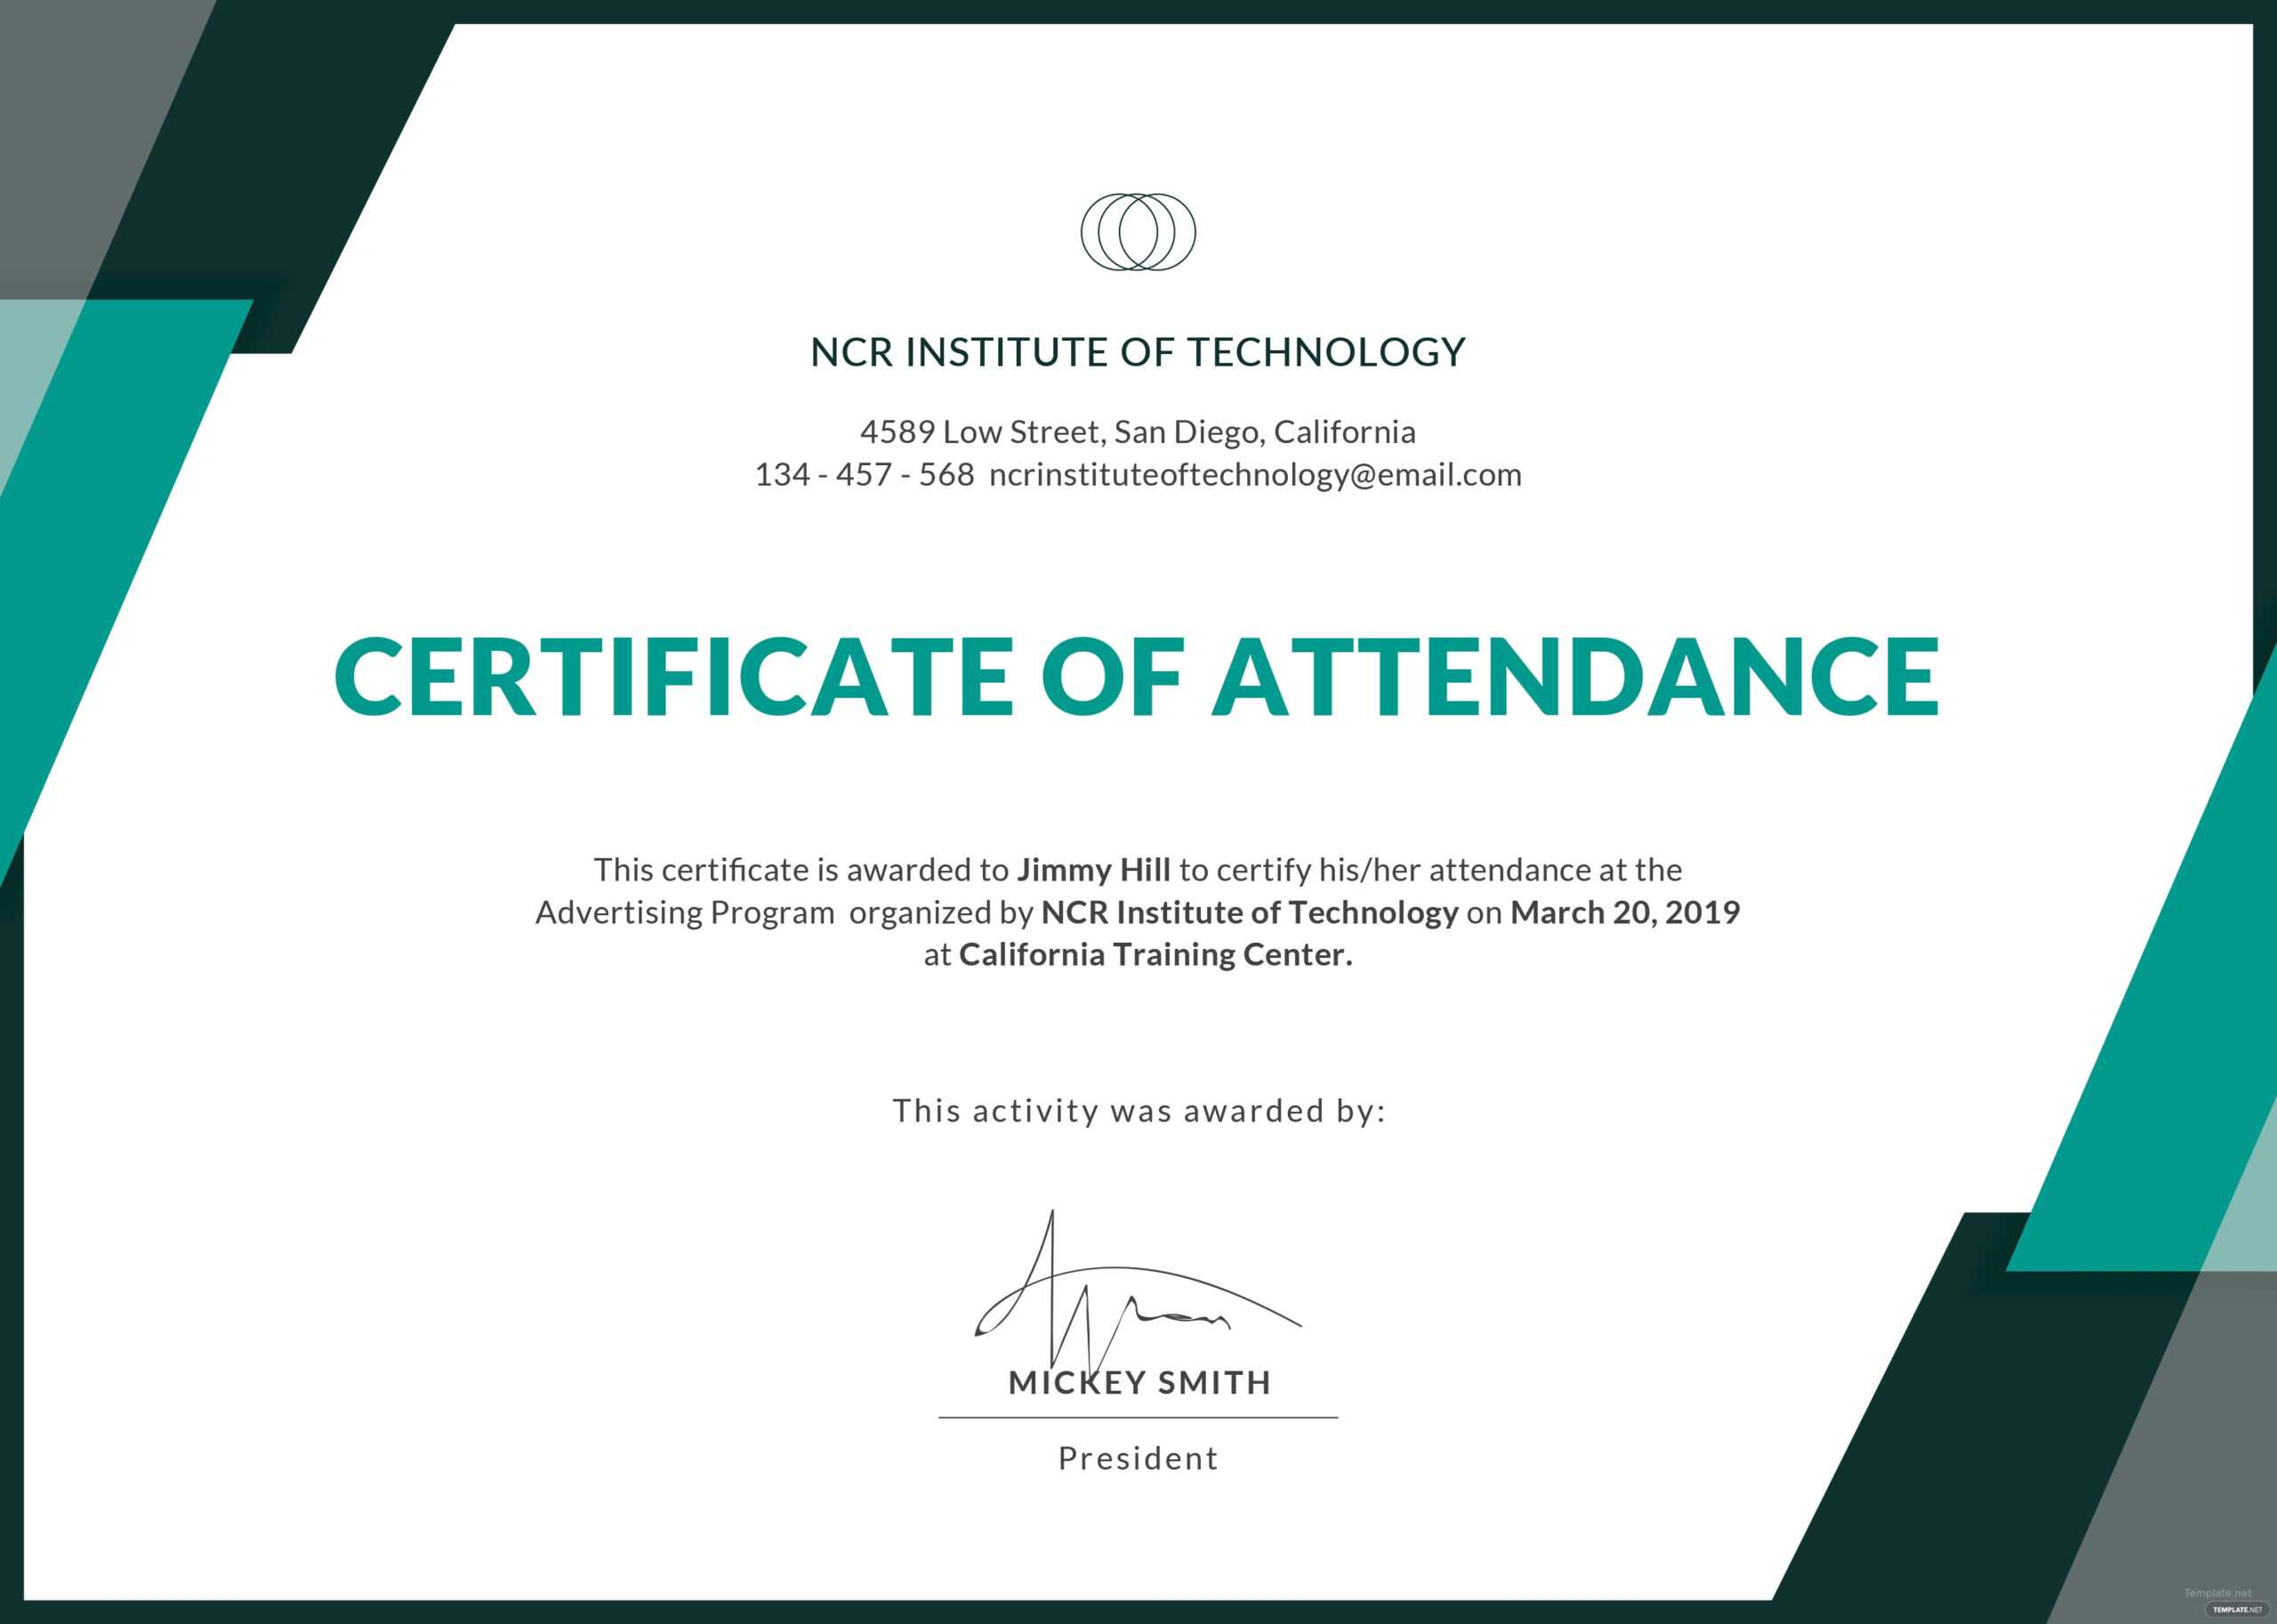 Certificate Templates: Free Conference Attendance throughout Conference Certificate Of Attendance Template